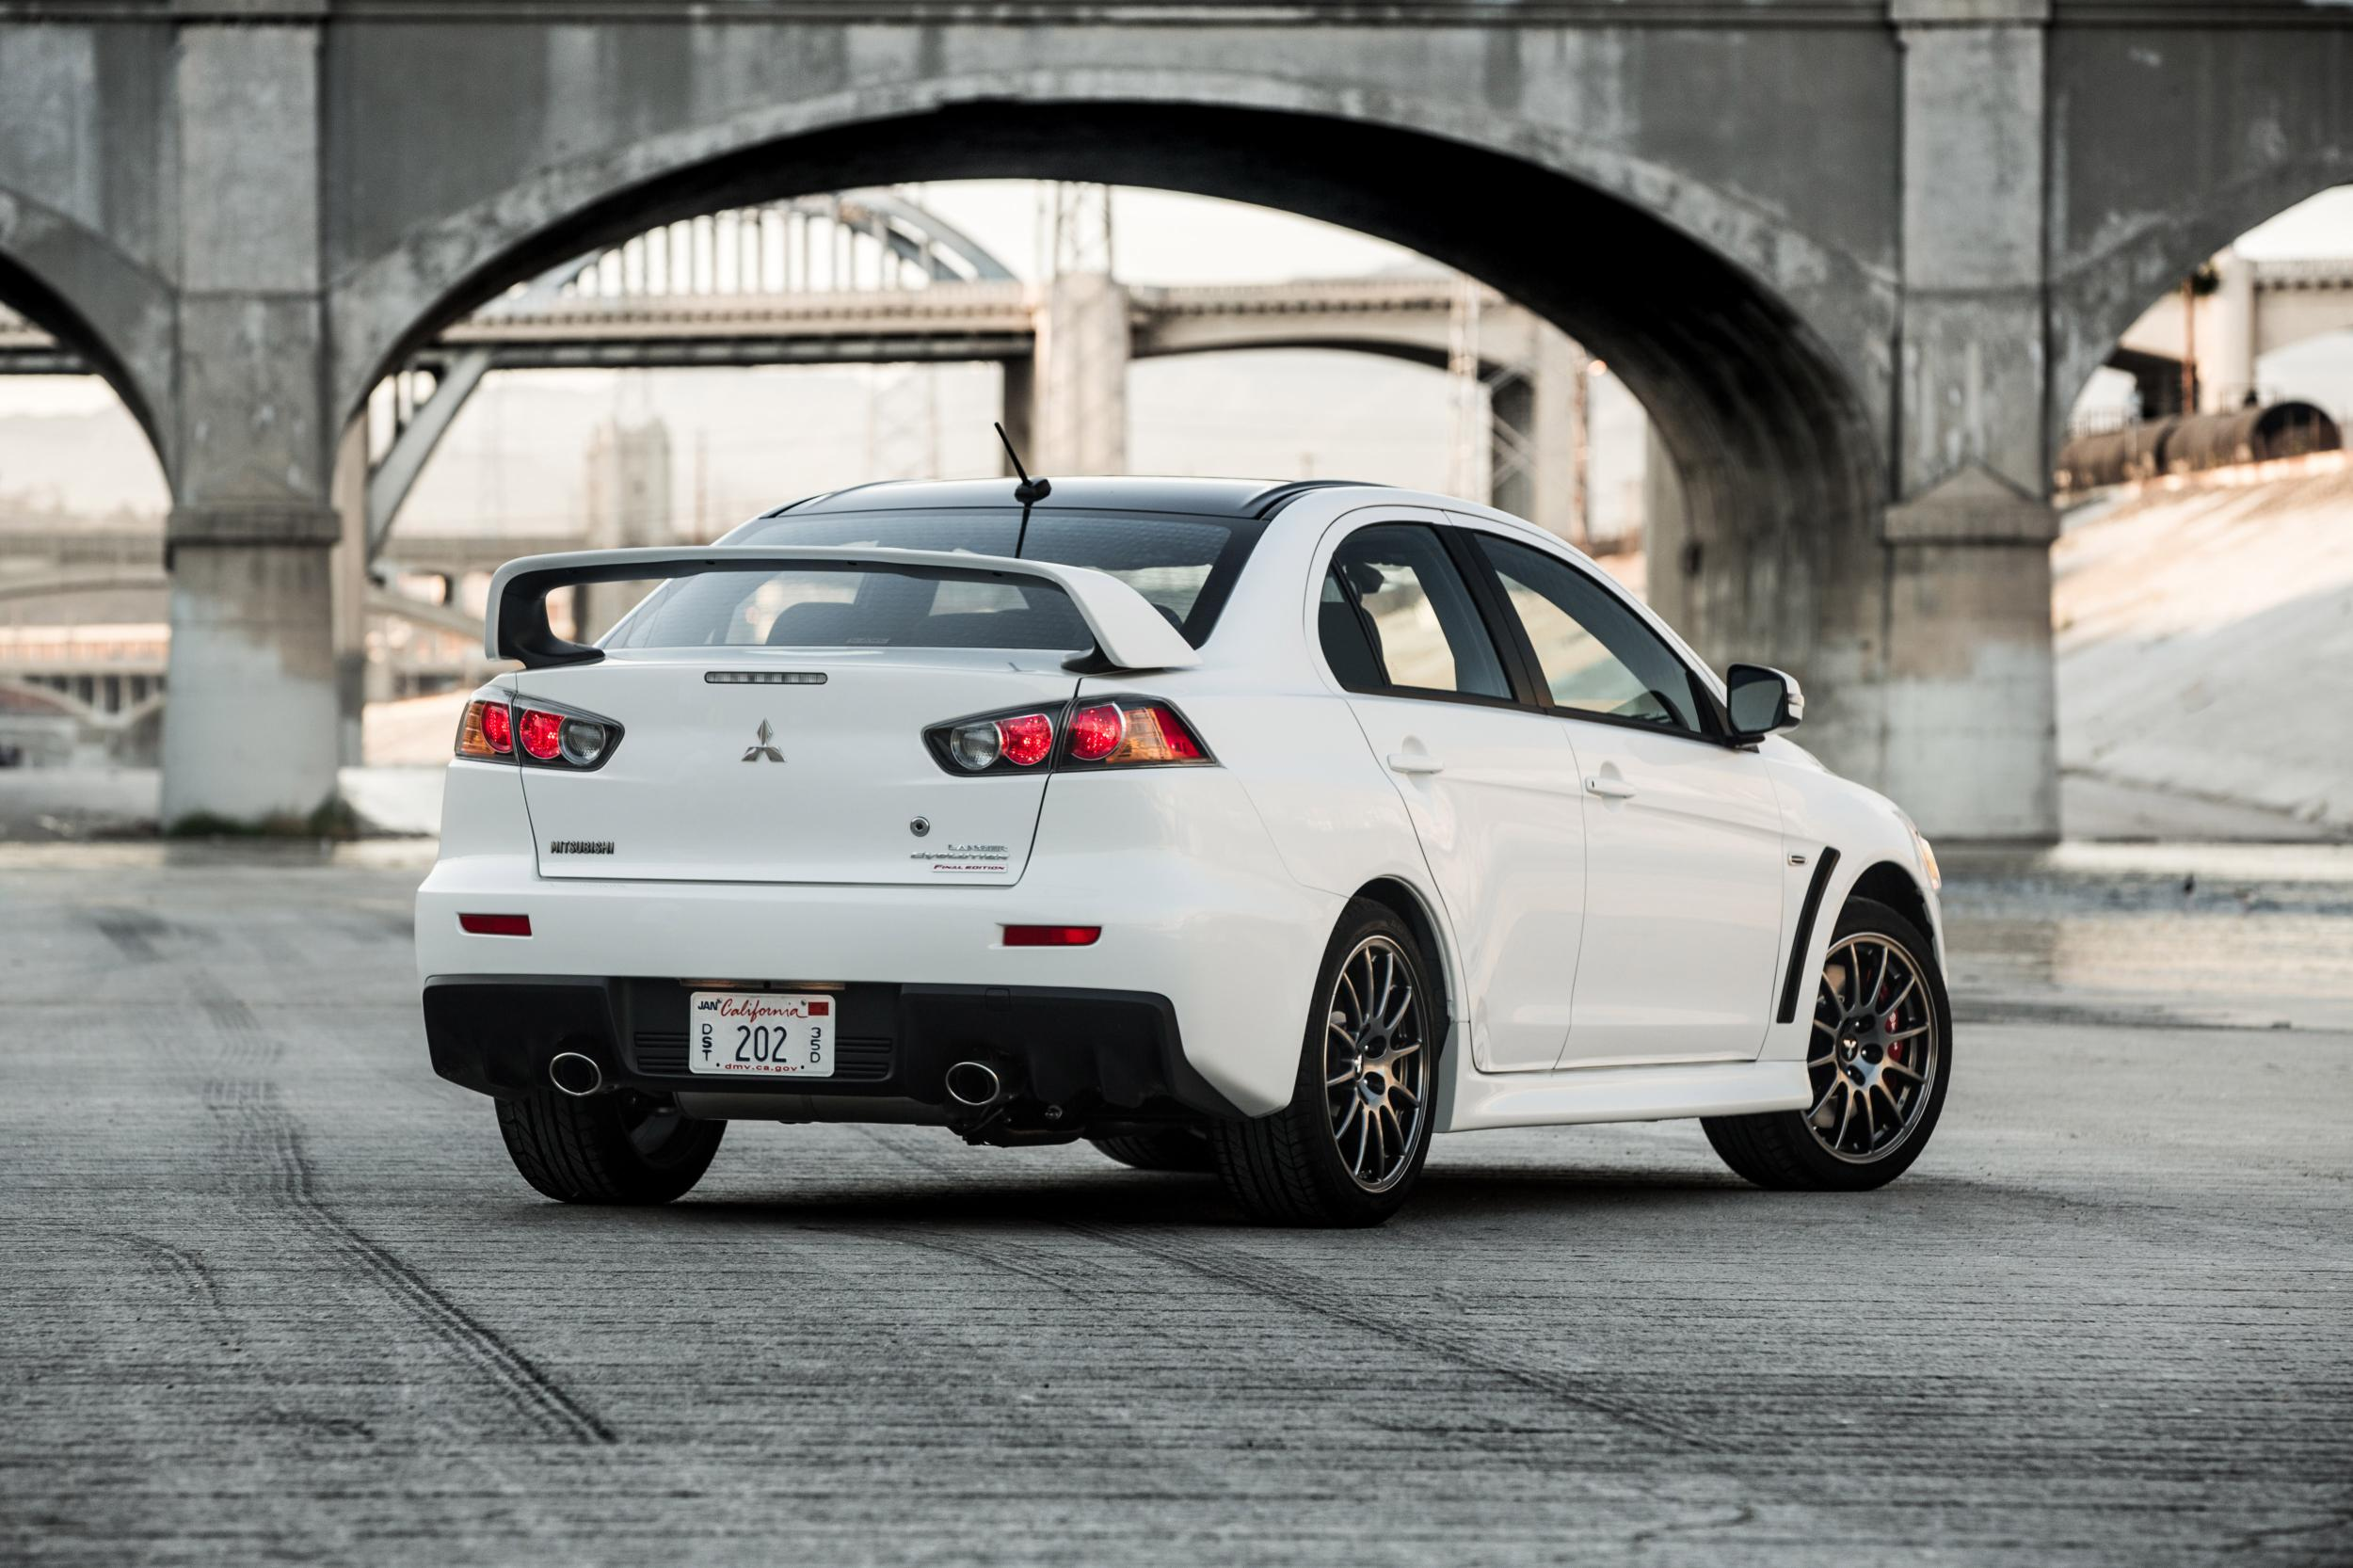 final mitsubishi lancer evolution x heads to ebay auction. Black Bedroom Furniture Sets. Home Design Ideas